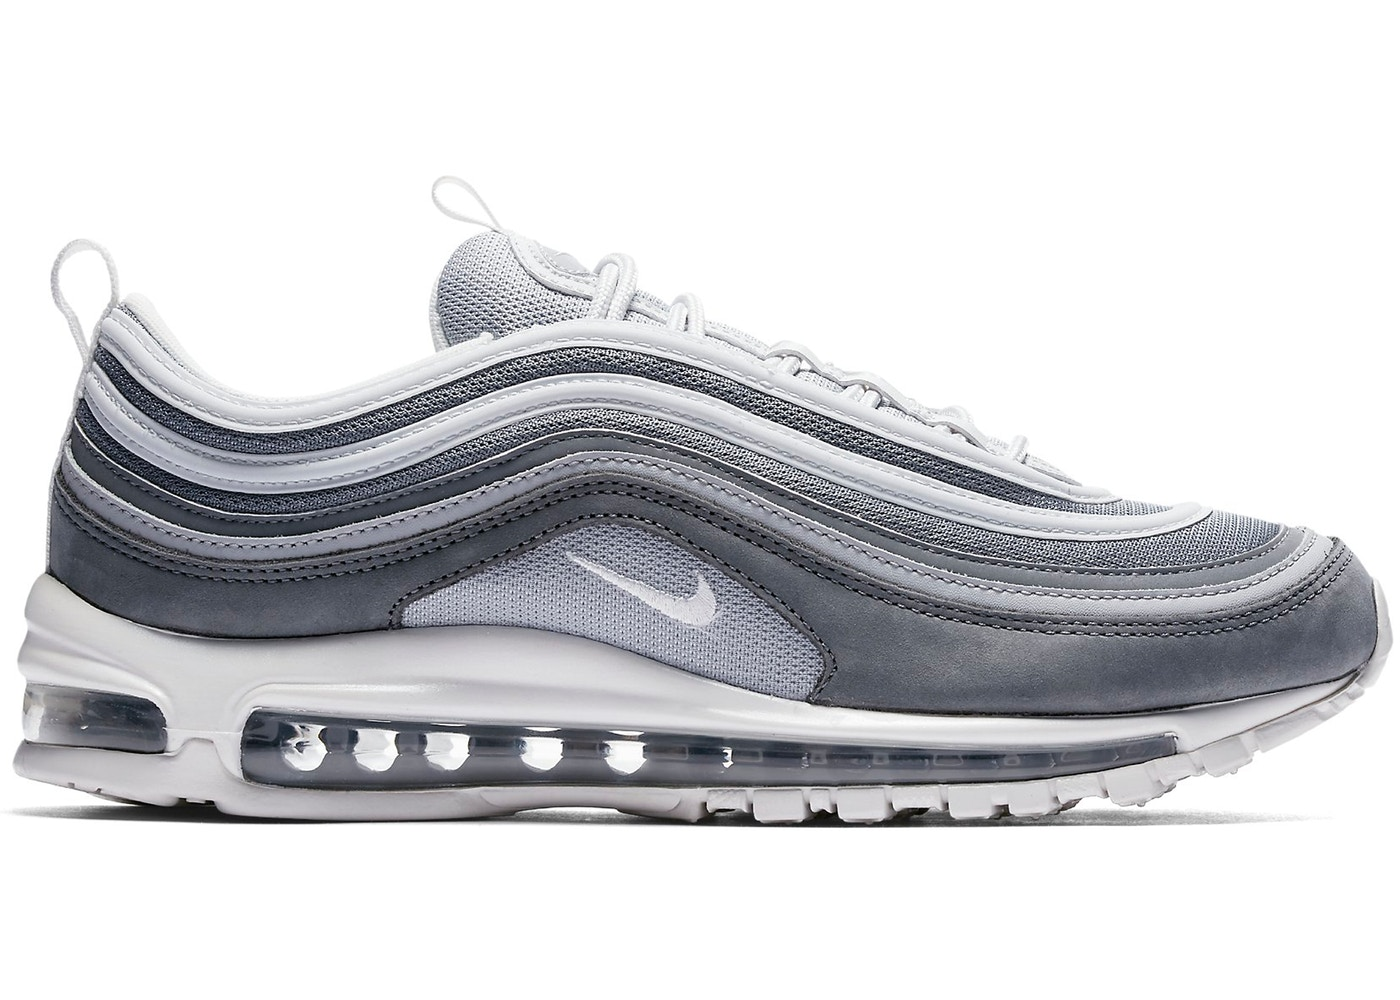 Nike Air Max 97 Metallic Silver Black KicksOnFire.com